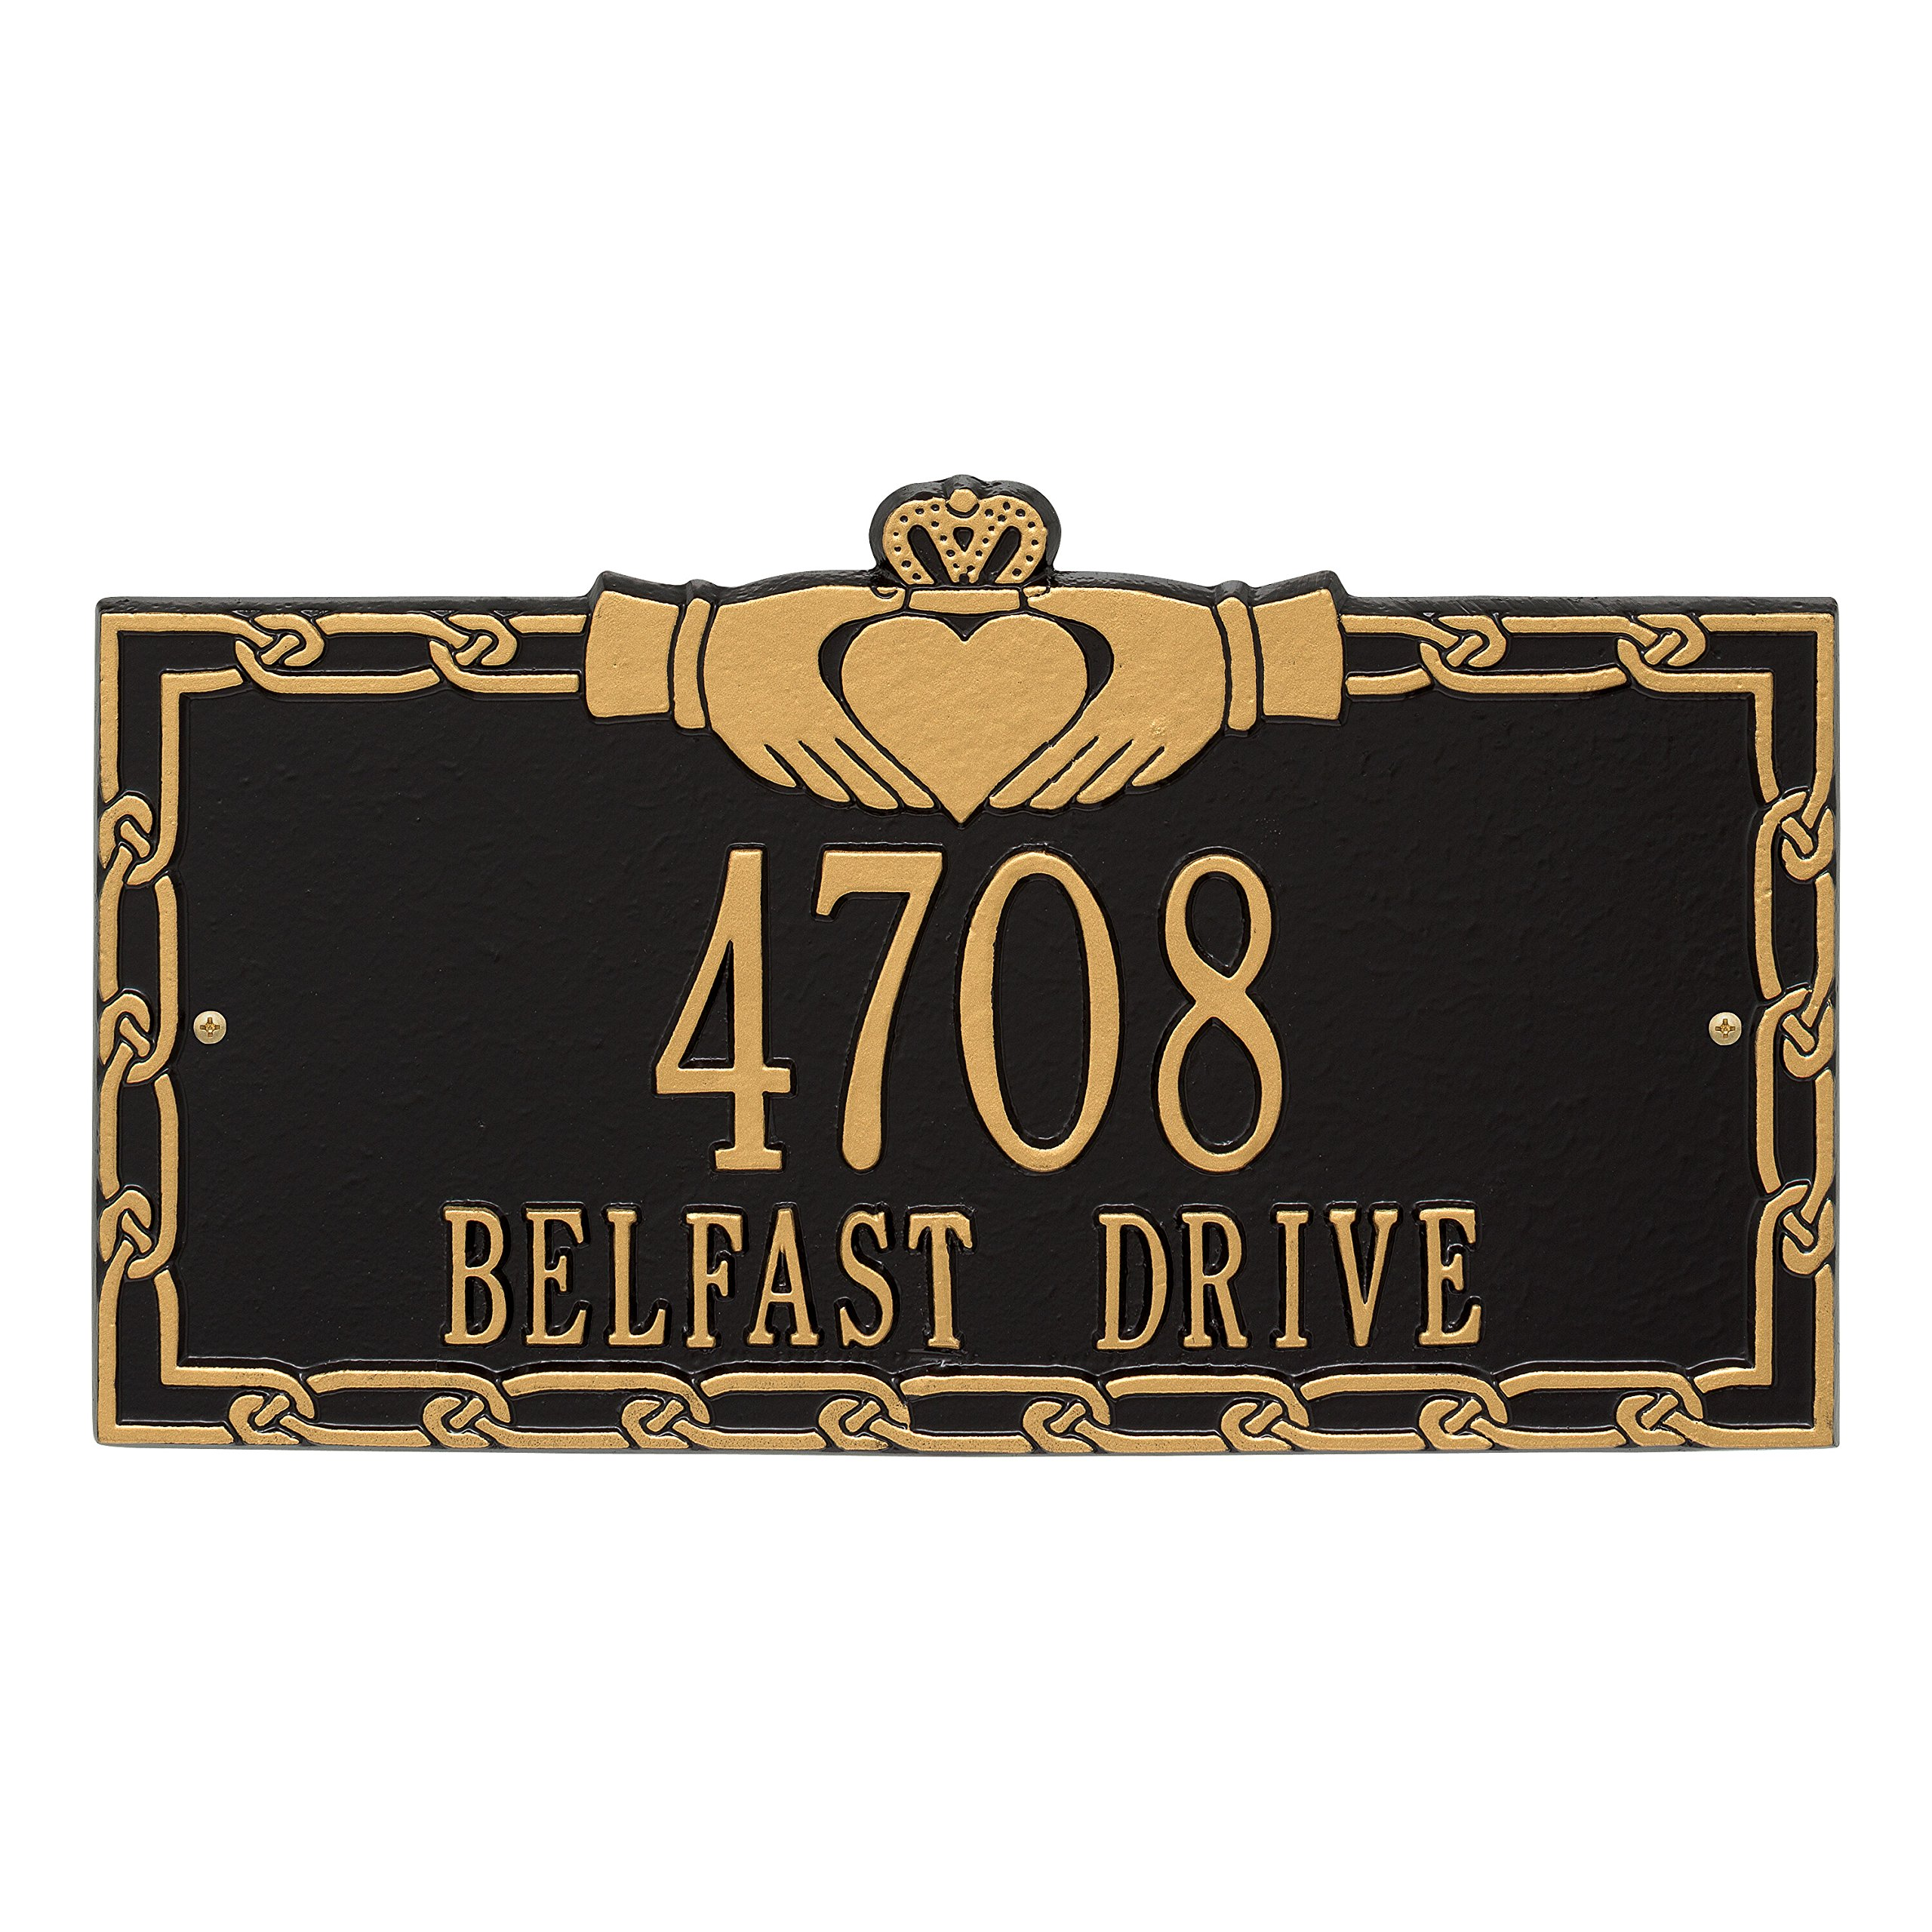 Whitehall Personalized Indoor/Outdoor Cast Irish Claddagh Address Plaque Sign with House Number and Street Name (Black Gold)